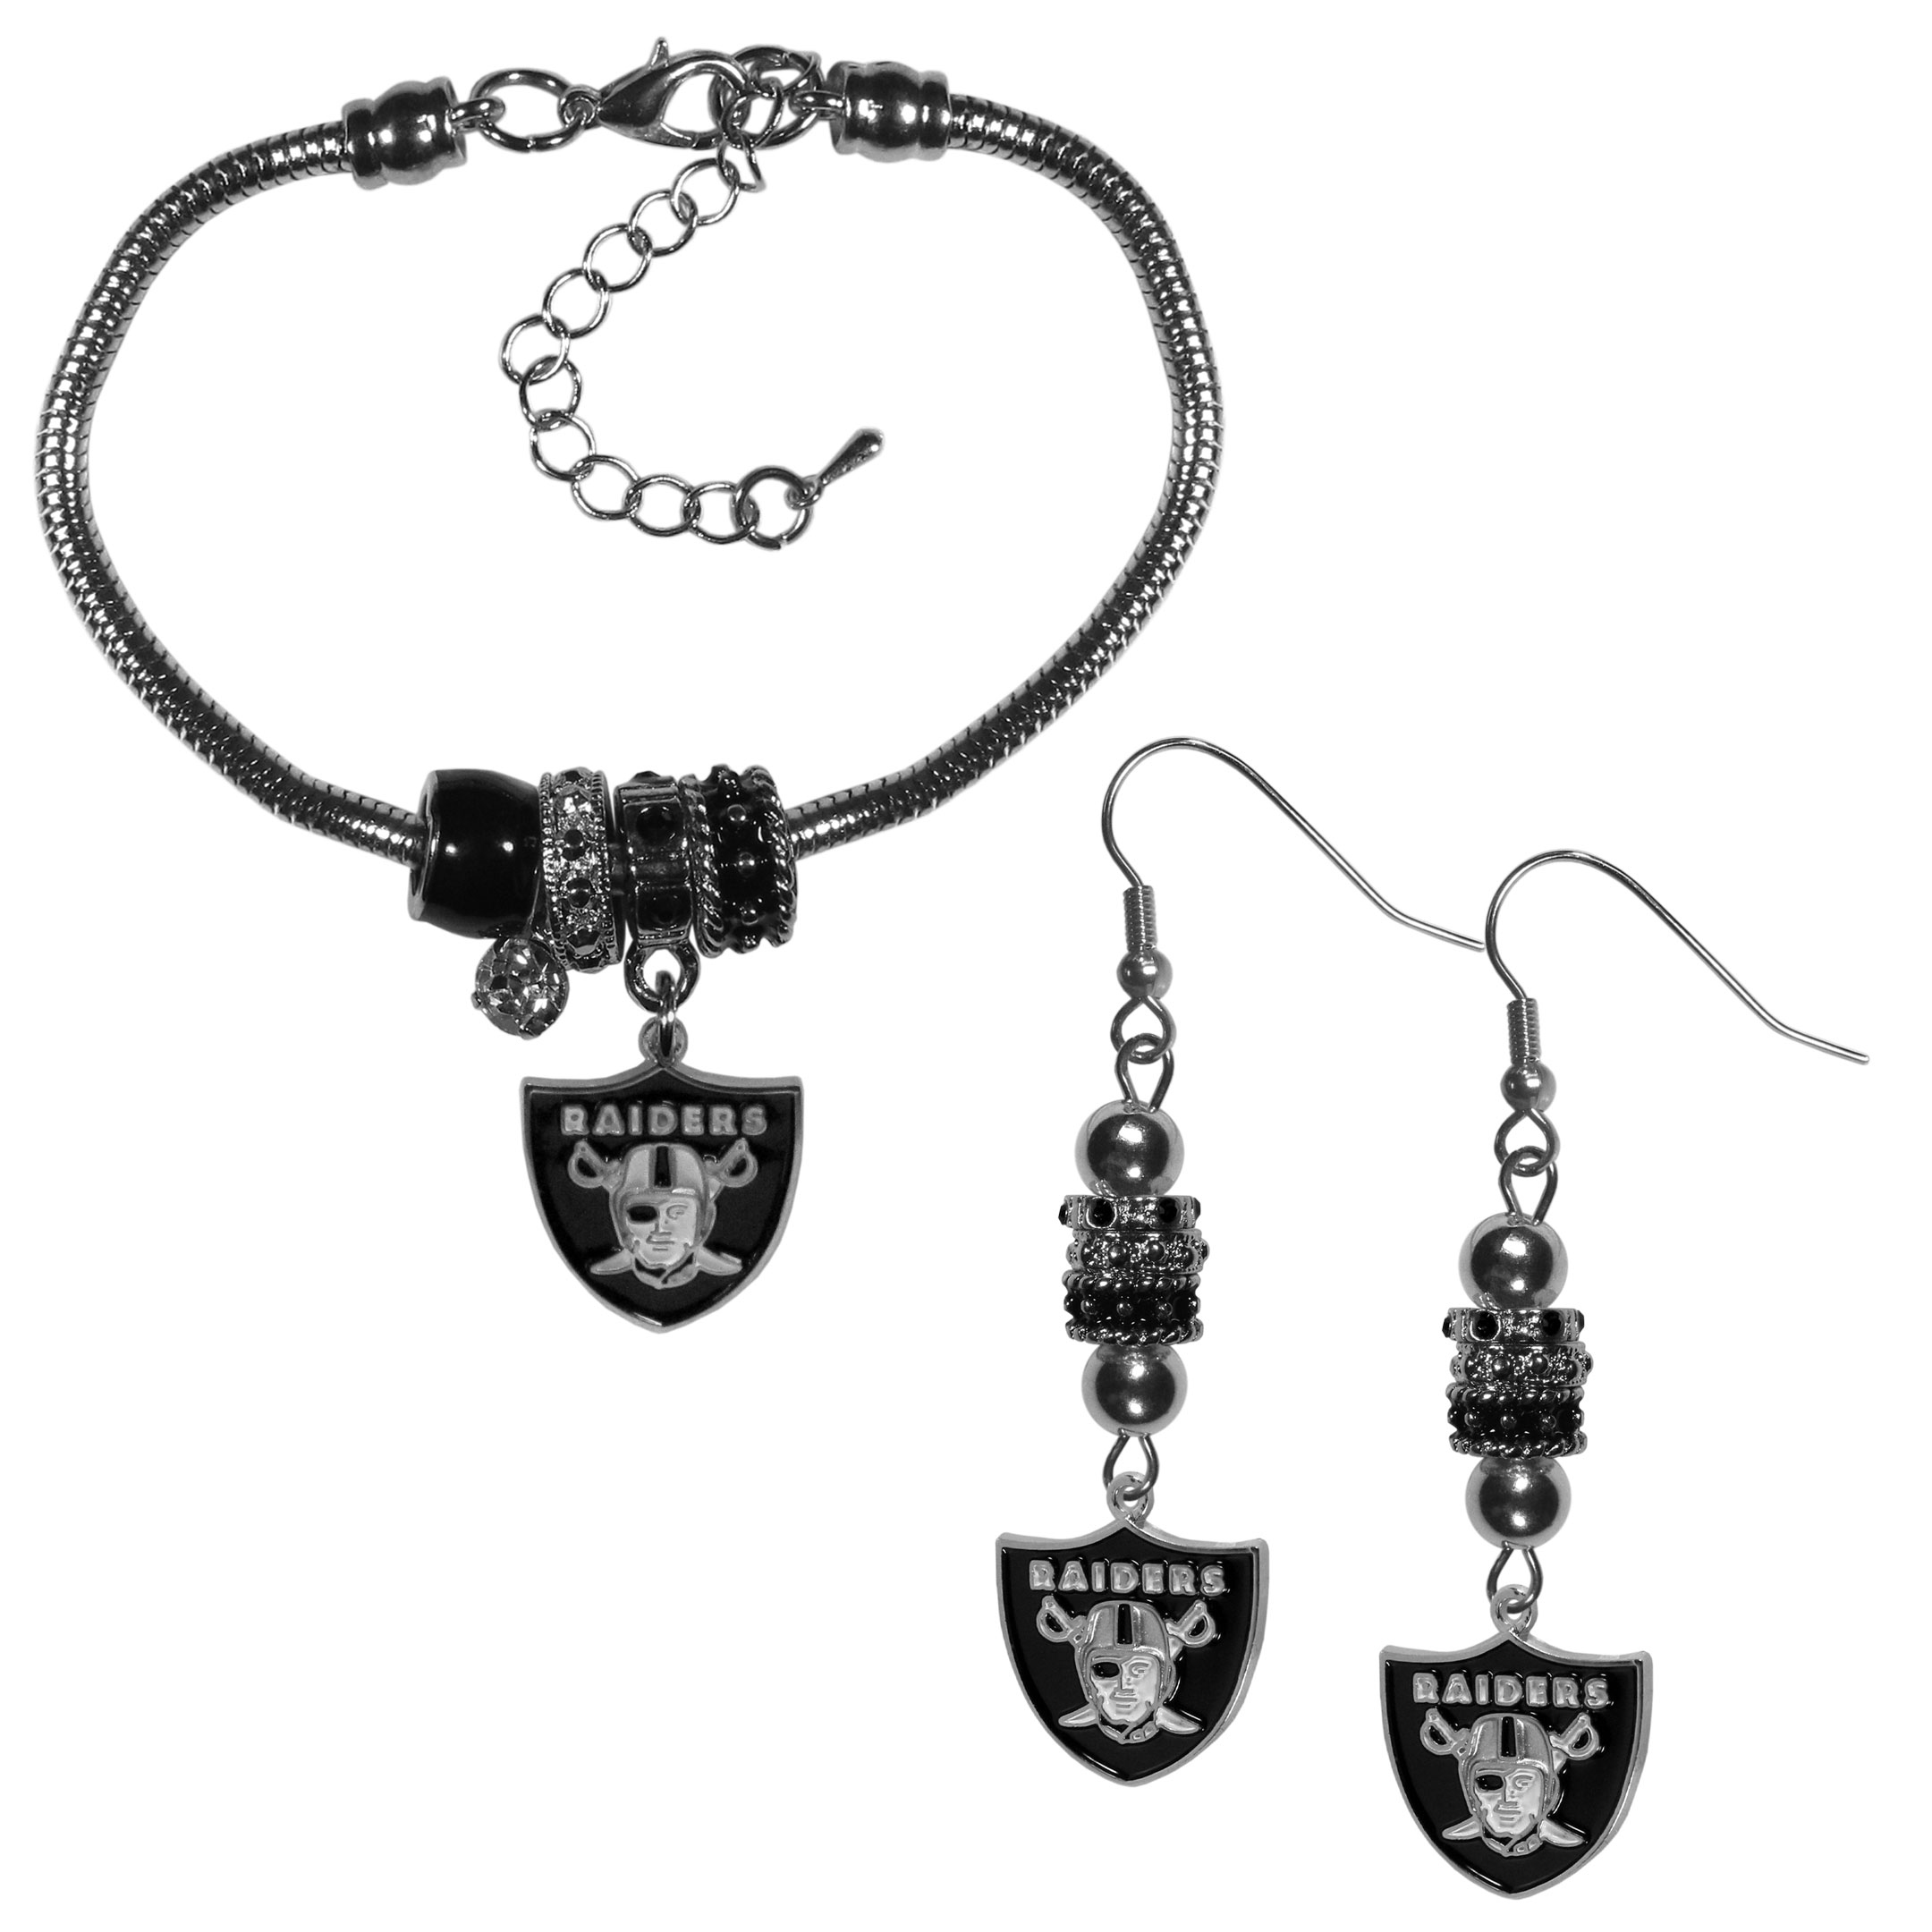 Oakland Raiders Euro Bead Earrings and Bracelet Set - We combine the popular Euro bead style with your love of the Oakland Raiders with this beautiful jewelry set that includes earrings and a matching bracelet. The stylish earrings feature hypoallergenic, nickel free fishhook posts and 3 team colored Euro beads and a metal team charm. The matching snake chain bracelet is 7.5 inches long with a 2 inch extender and 4 Euro beads with a rhinestone charm and team charm.